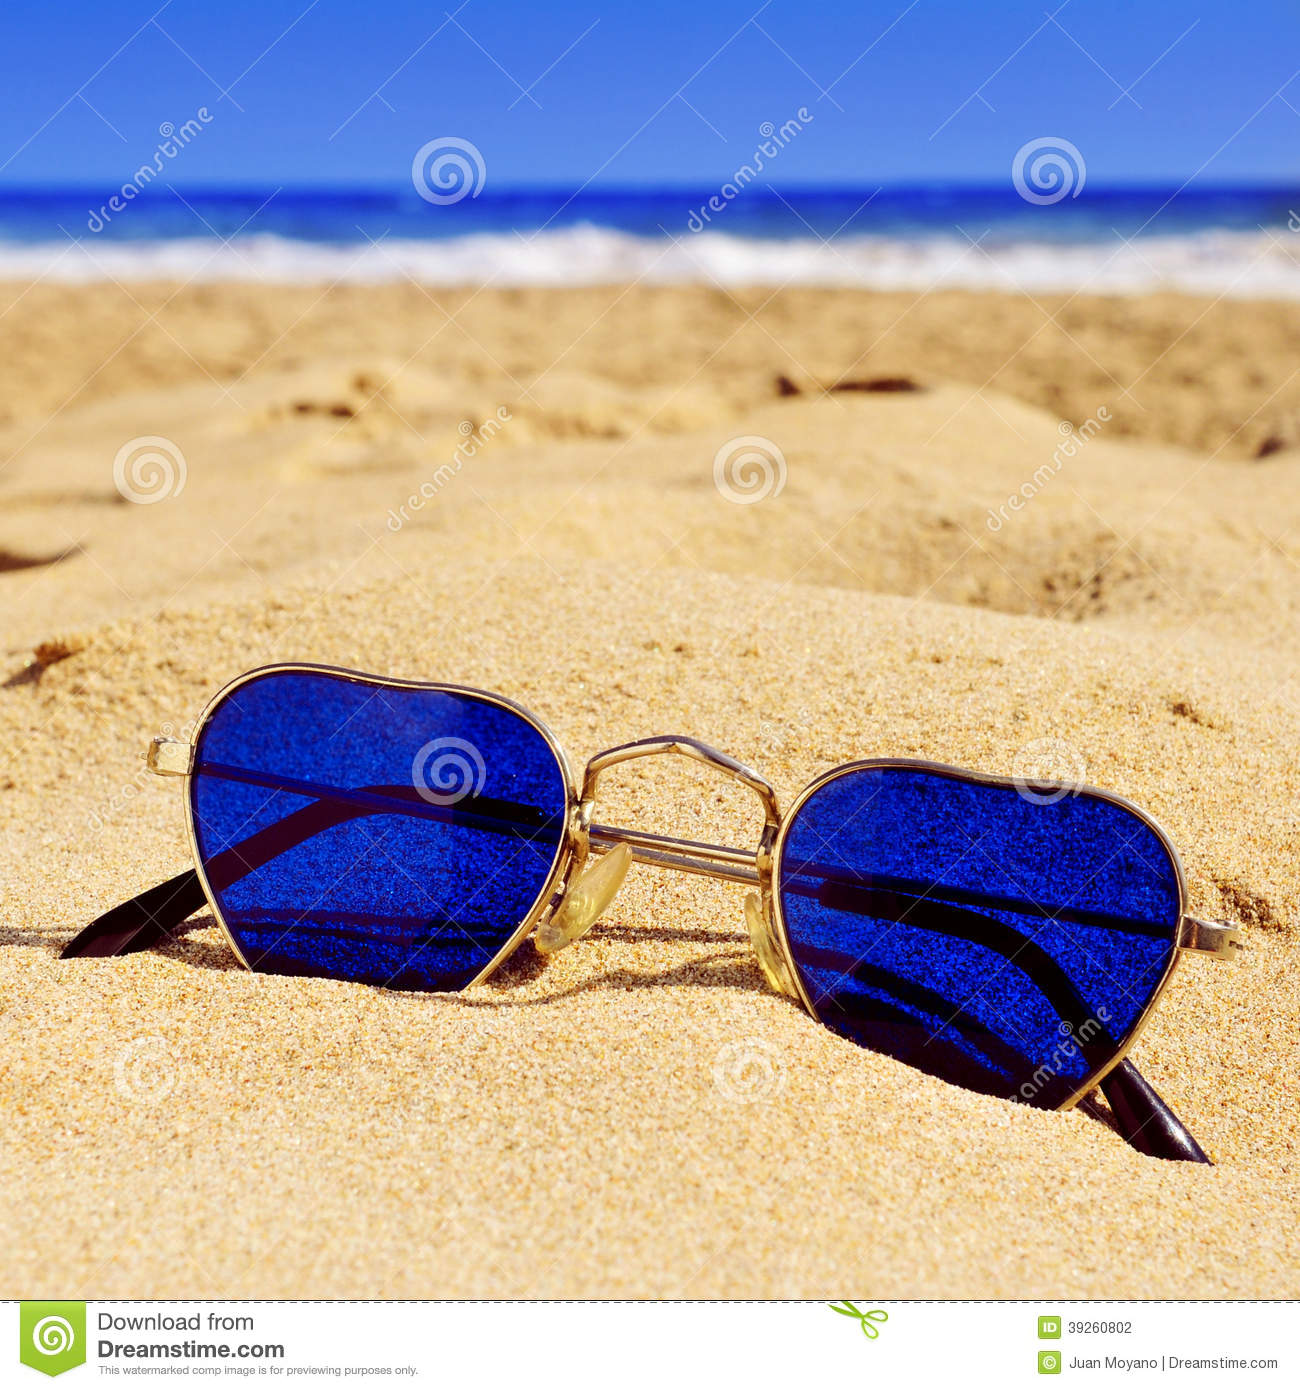 Heart-shaped Sunglasses In The Sand Of A Beach Stock Photo